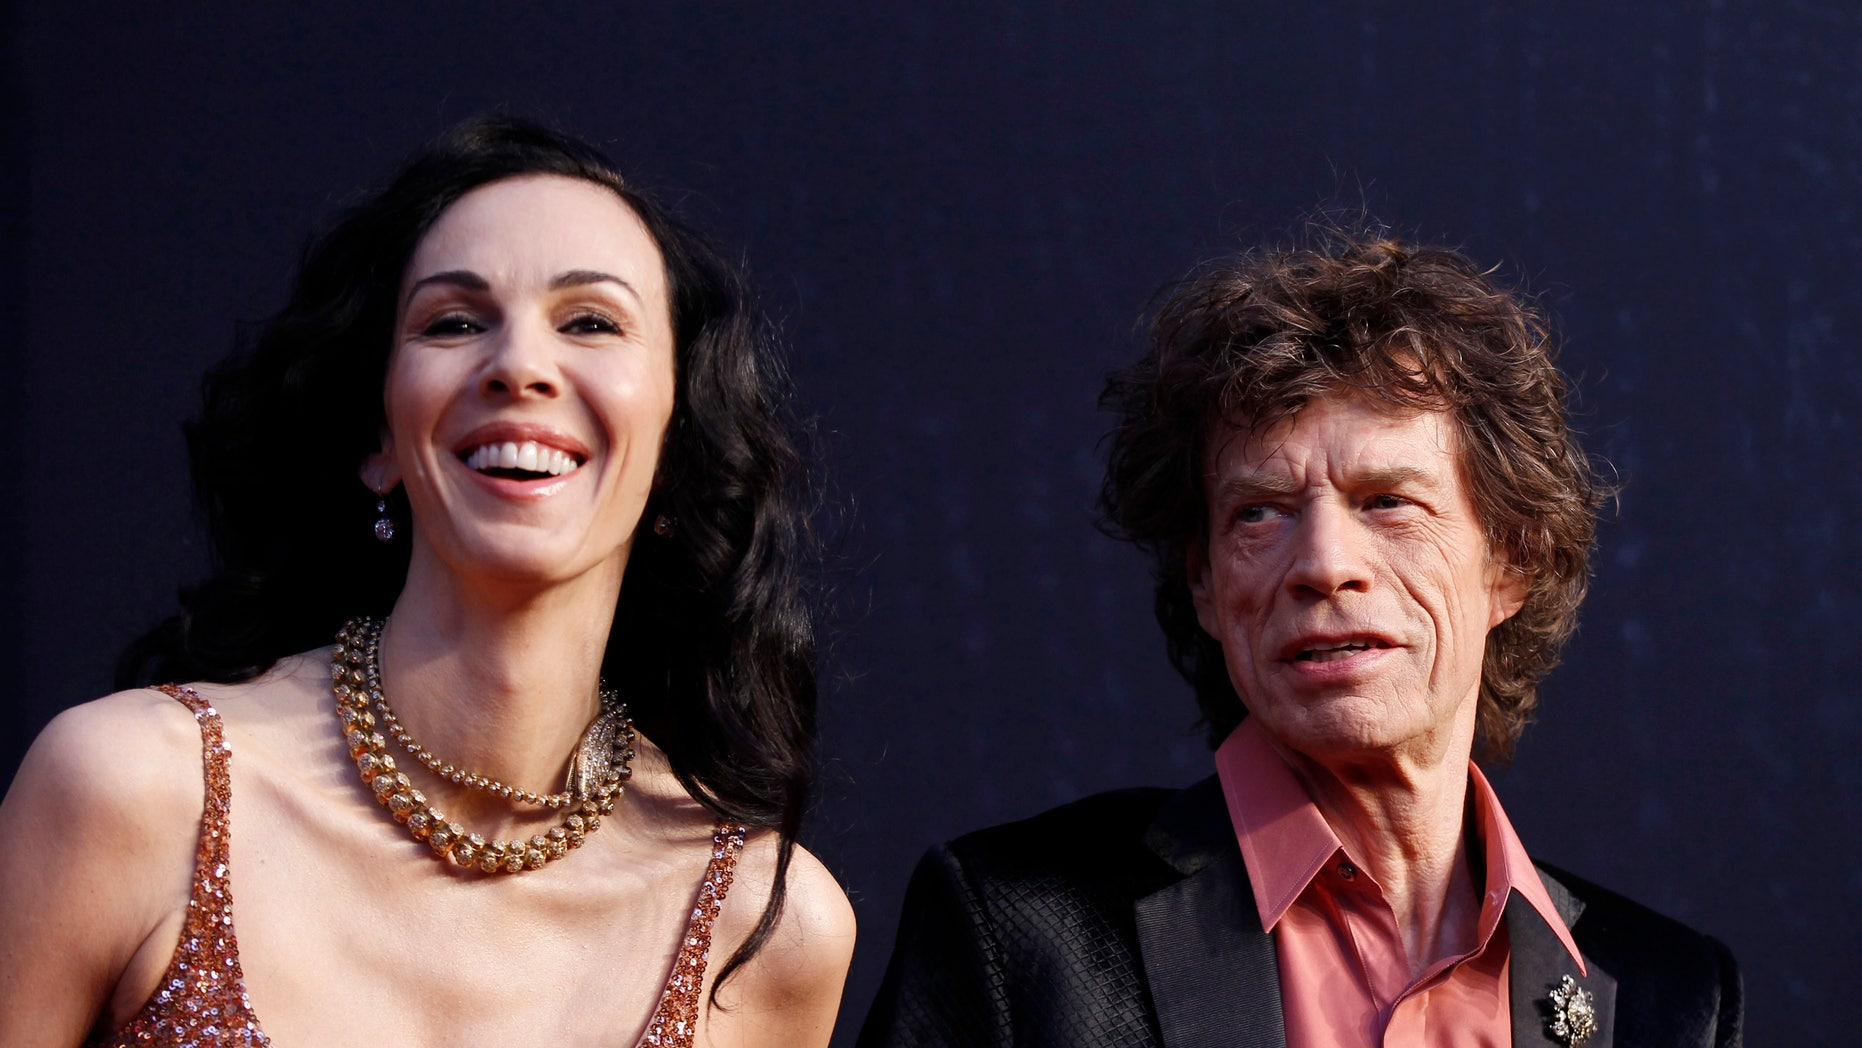 February 27, 2011. Rock musician Mick Jagger (R) and model L'Wren Scott arrive at the 2011 Vanity Fair Oscar party in West Hollywood, California.